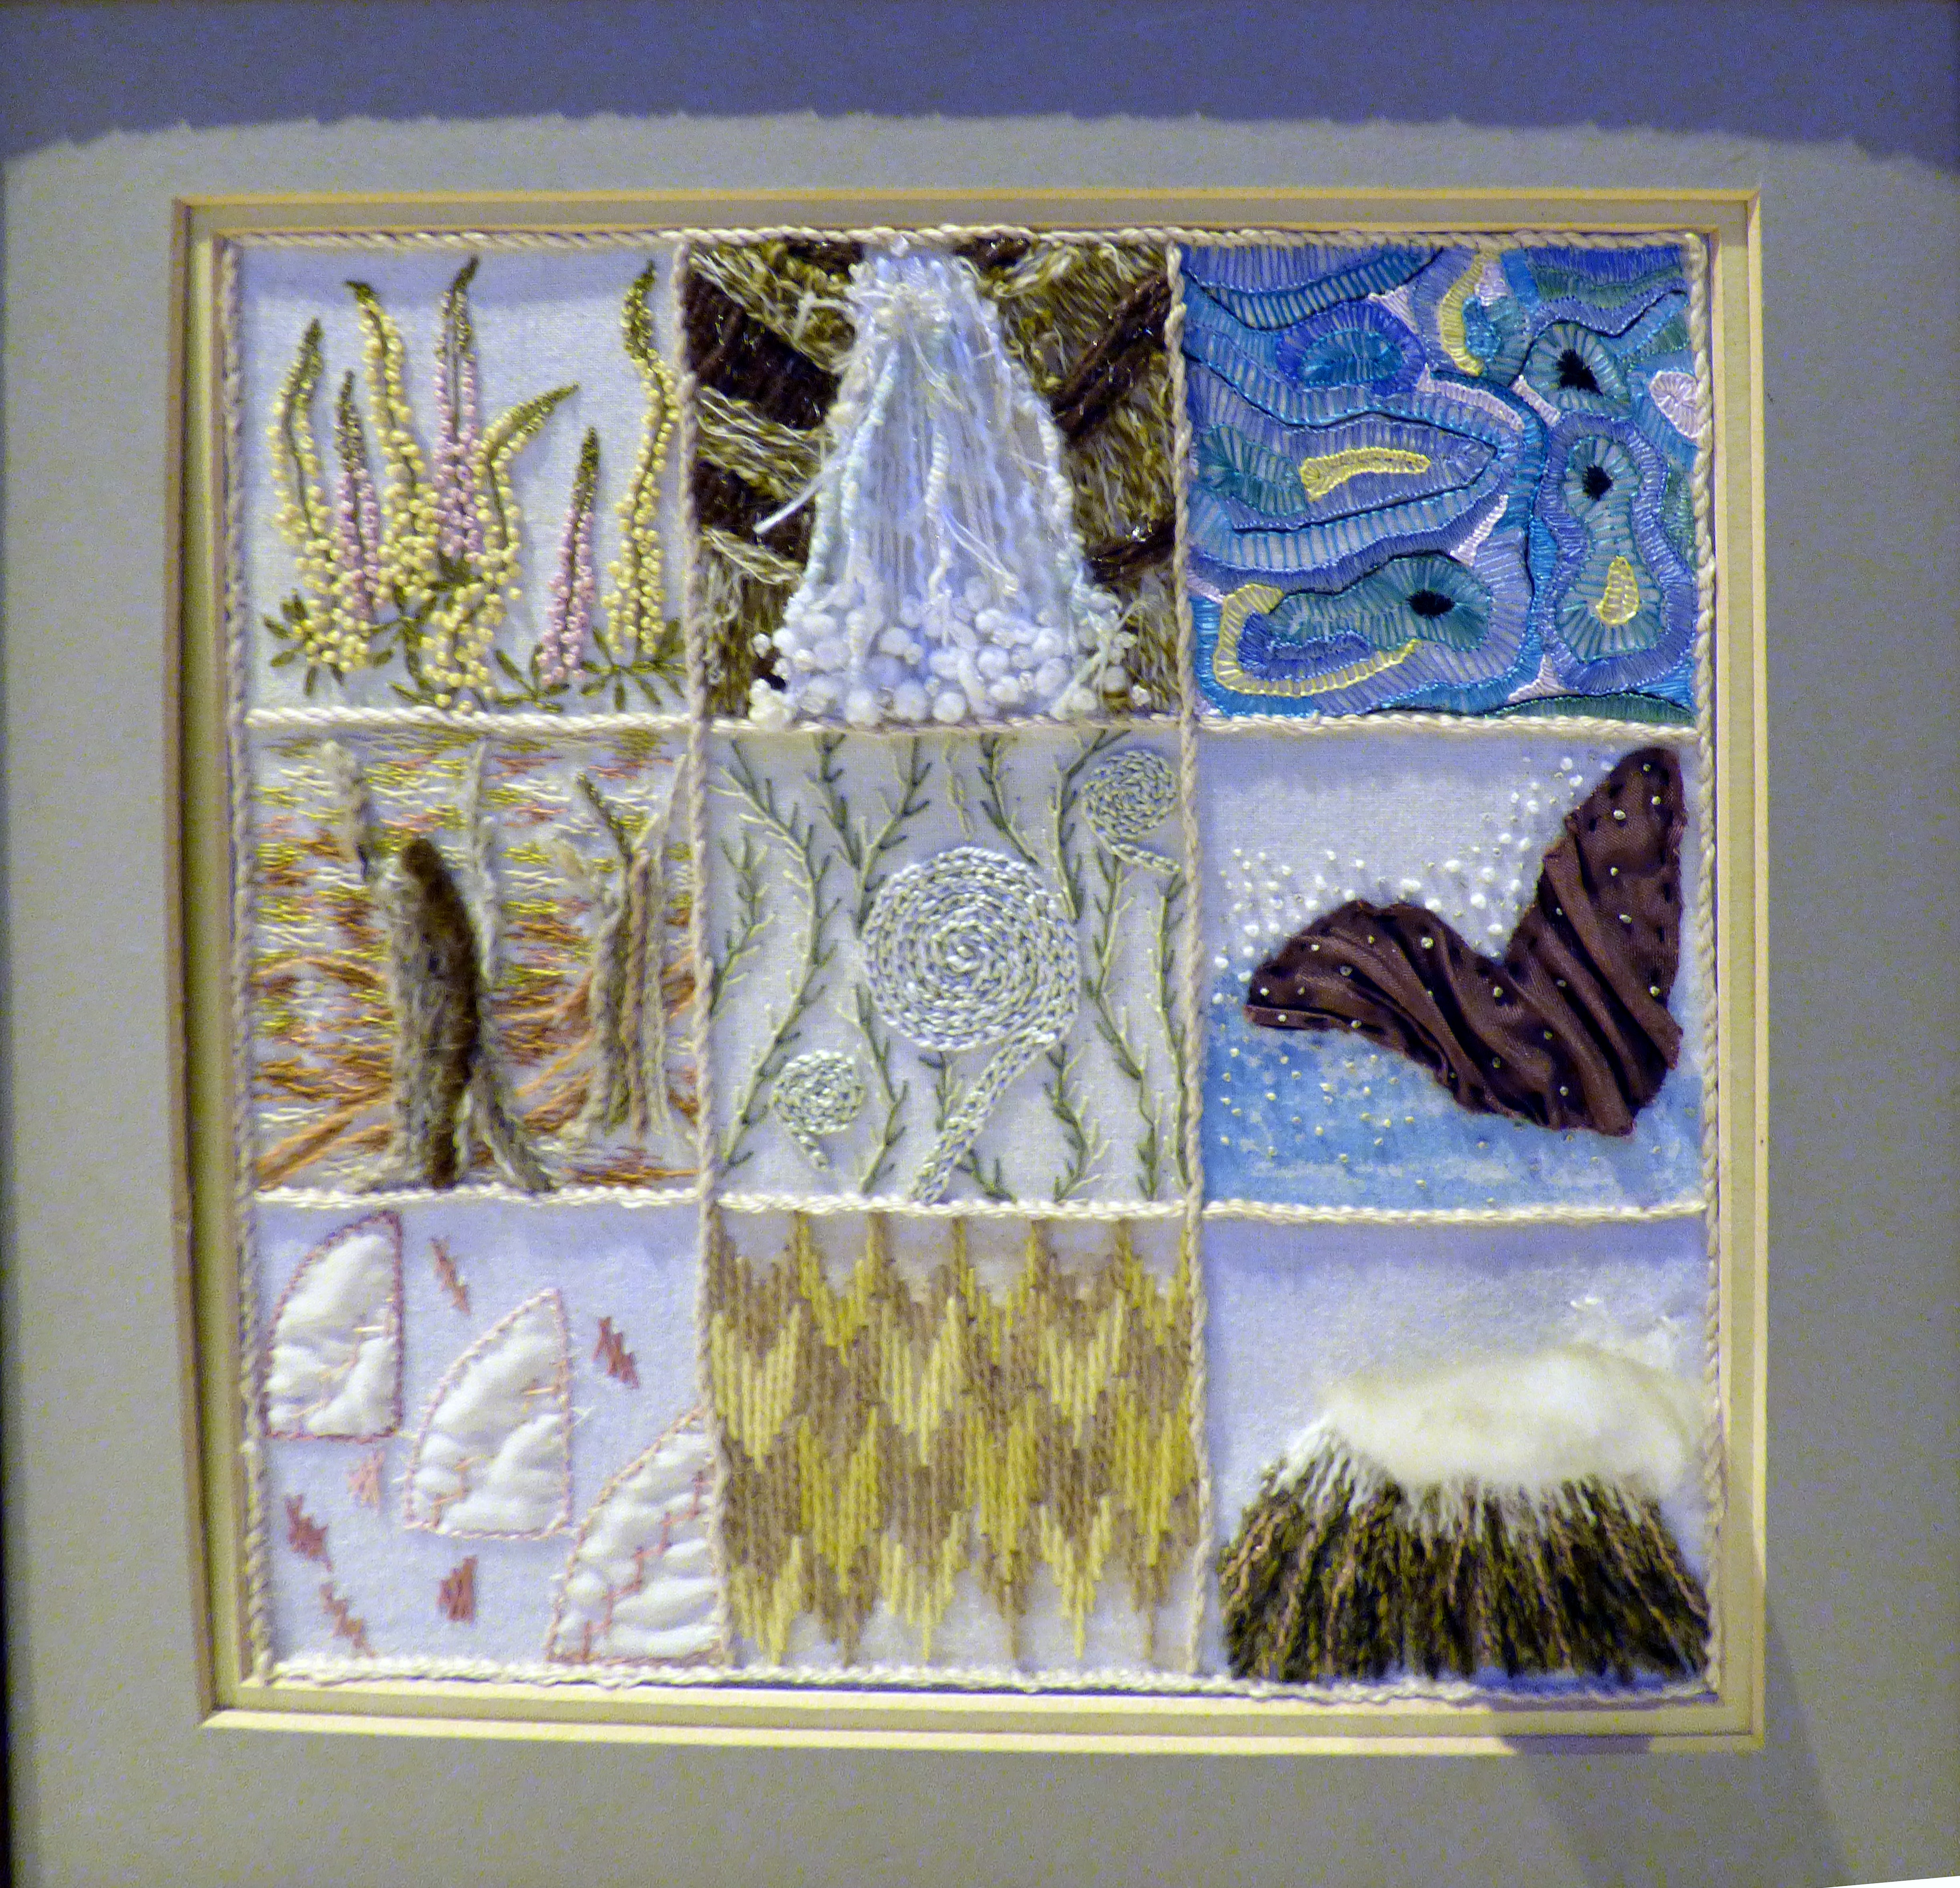 IMAGES OF NEW ZEALAND by Linda Sowler, hand embroidery,  Endeavour exhibition, Liverpool Cathedral, Sept 2018